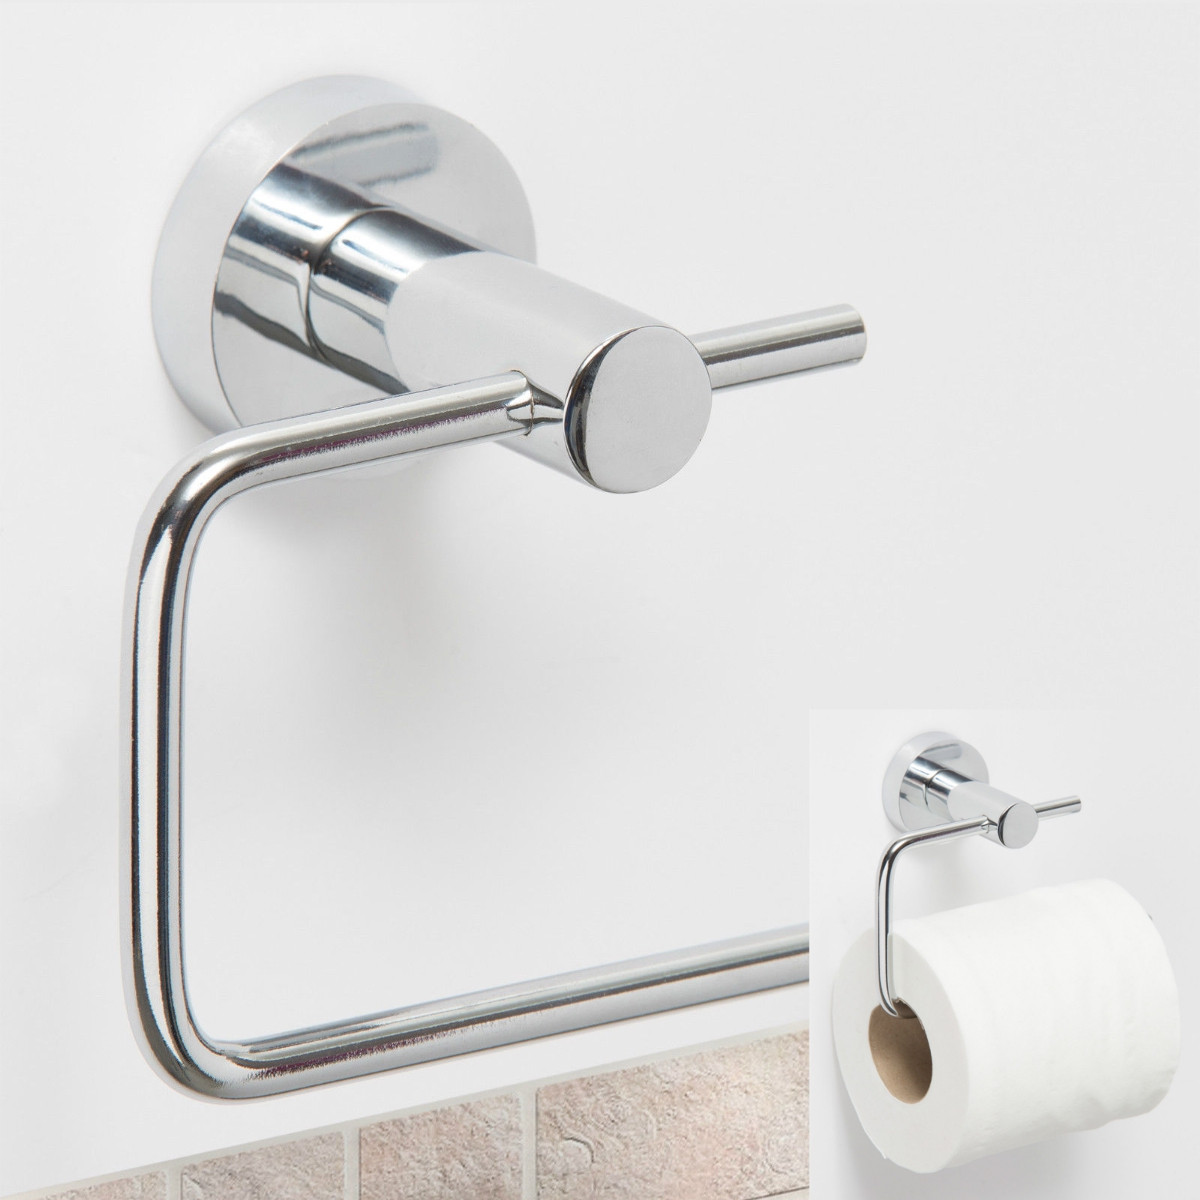 Bathroom Hardware Cheap Price Shamanda Sus 304 Stainless Steel Kitchen Bathroom Towel Dispenser 3m Stick Suction Cup Toilet Paper Holder Polished Finished Paper Holders